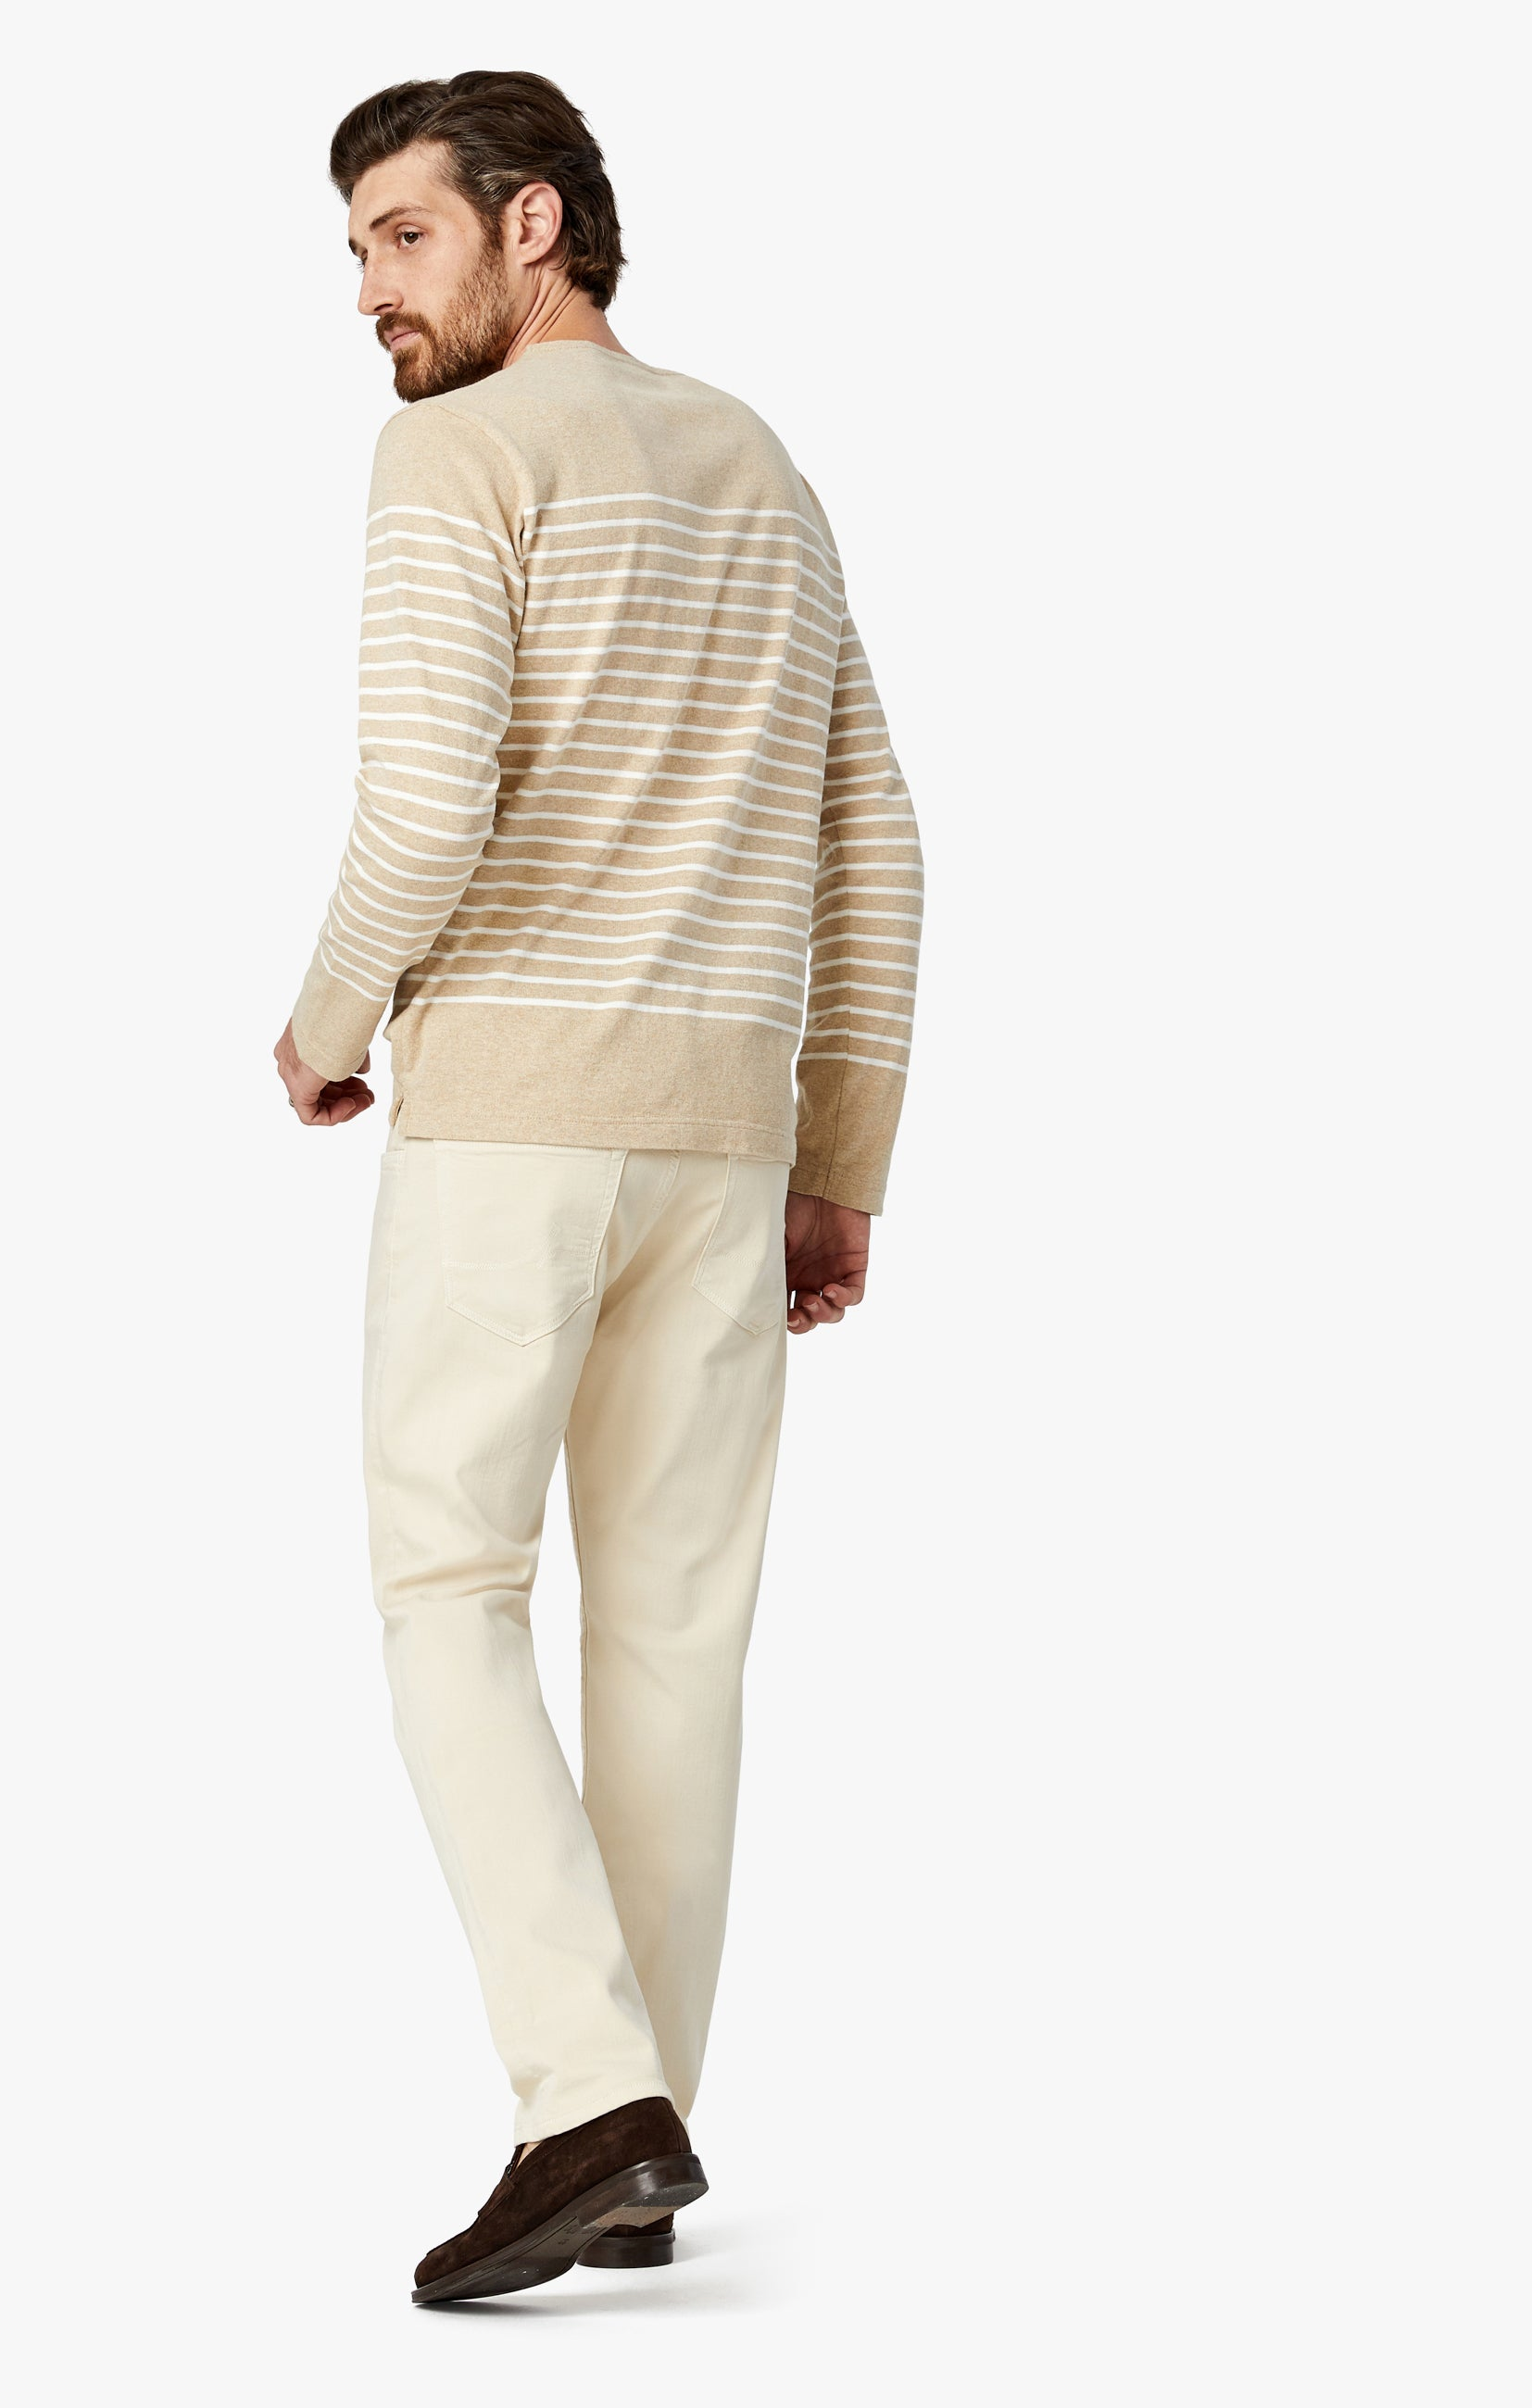 Cool Tapered Leg Pants In Natural Comfort Image 5